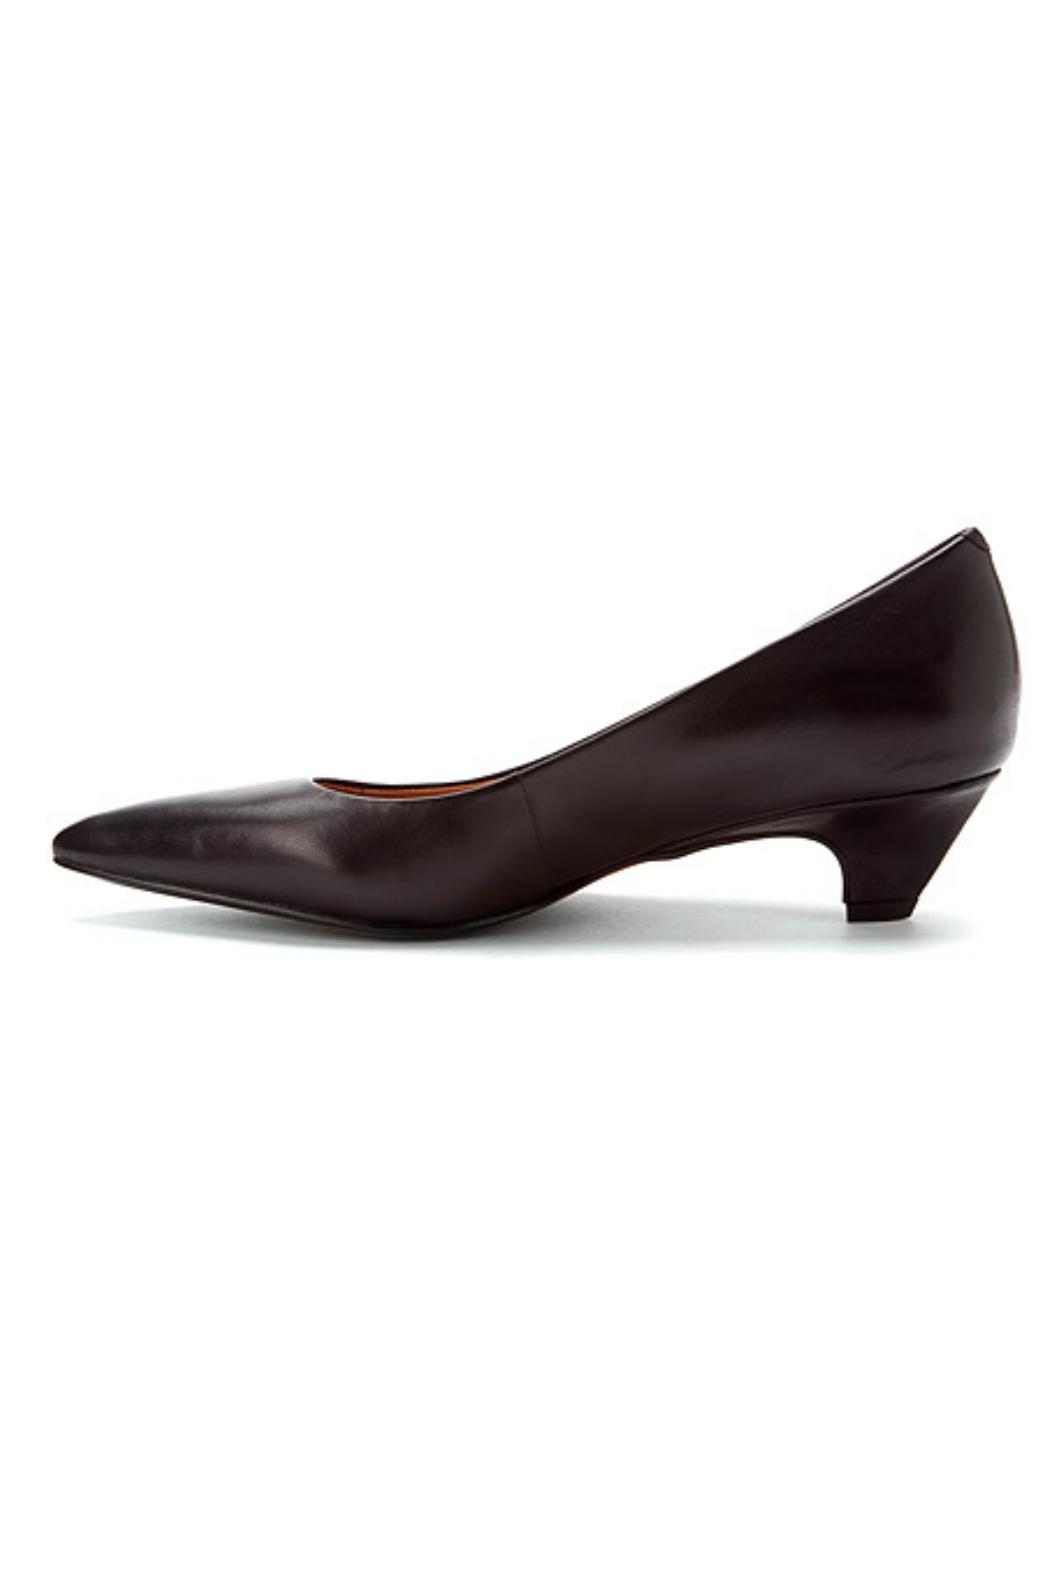 corso como low heel pump from pennsylvania by well heeled boutique